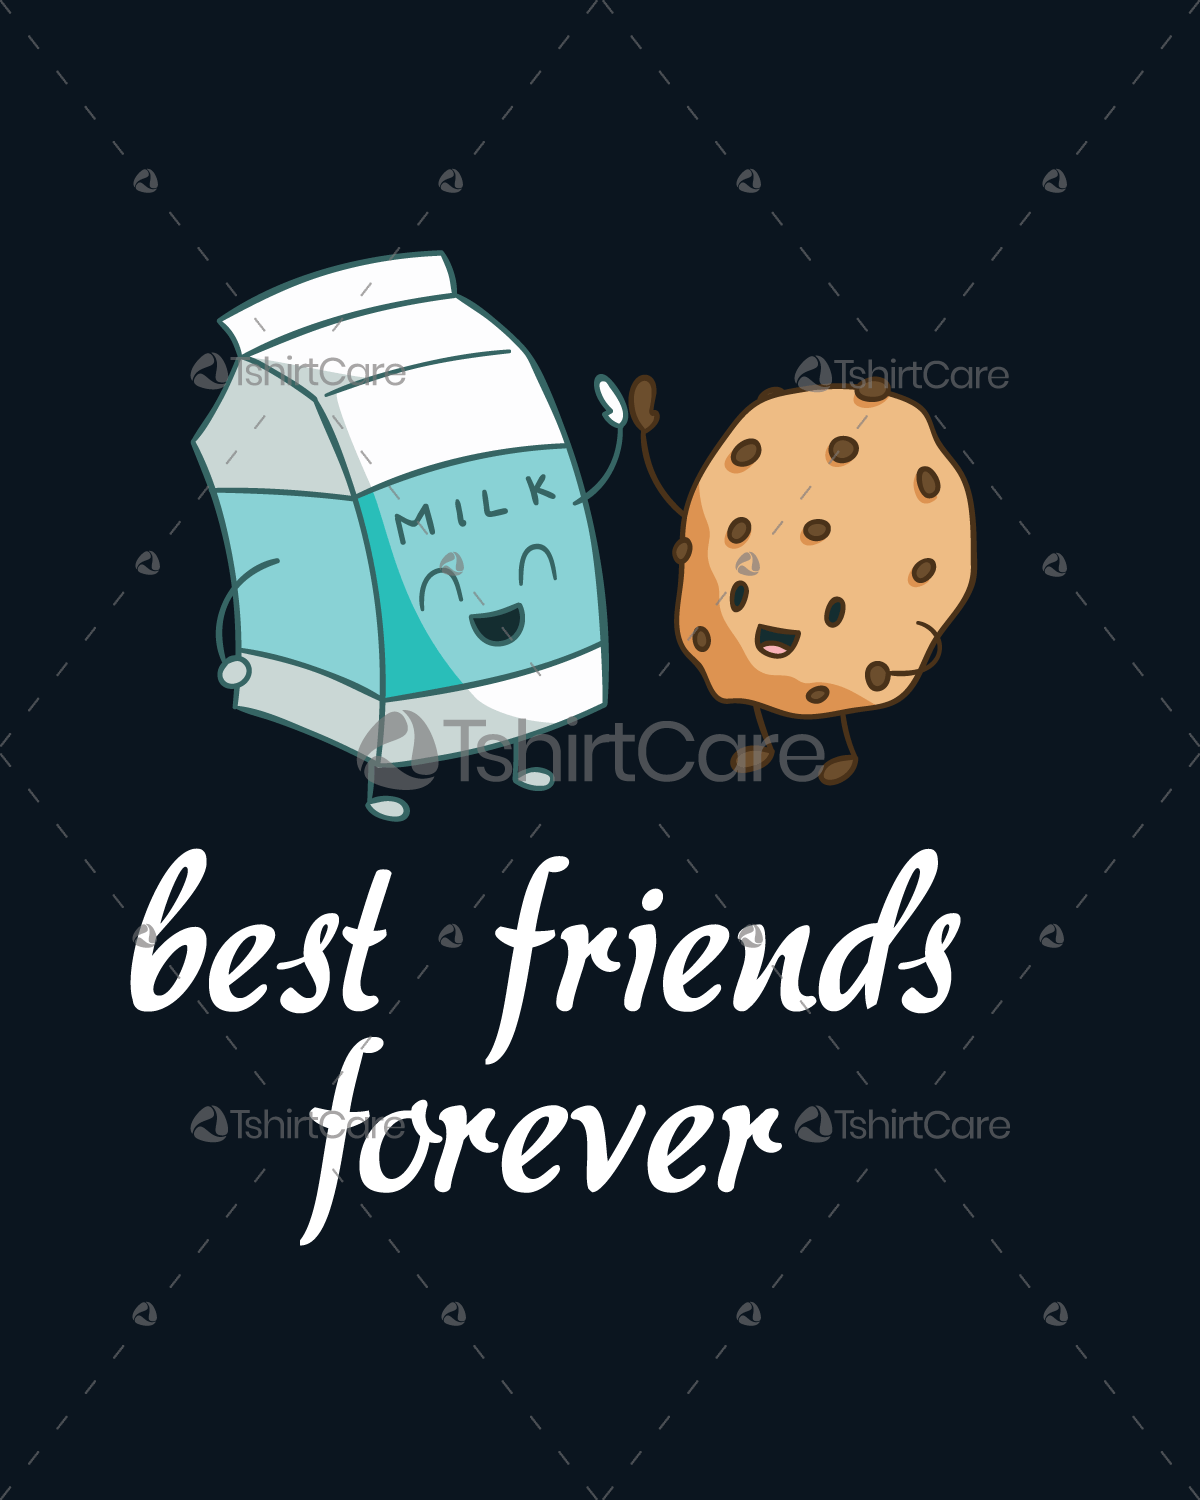 b7f8844c64 Milk and cookies friendship T shirt Design Best Friends Tee Shirts for Men  & Women - TshirtCare